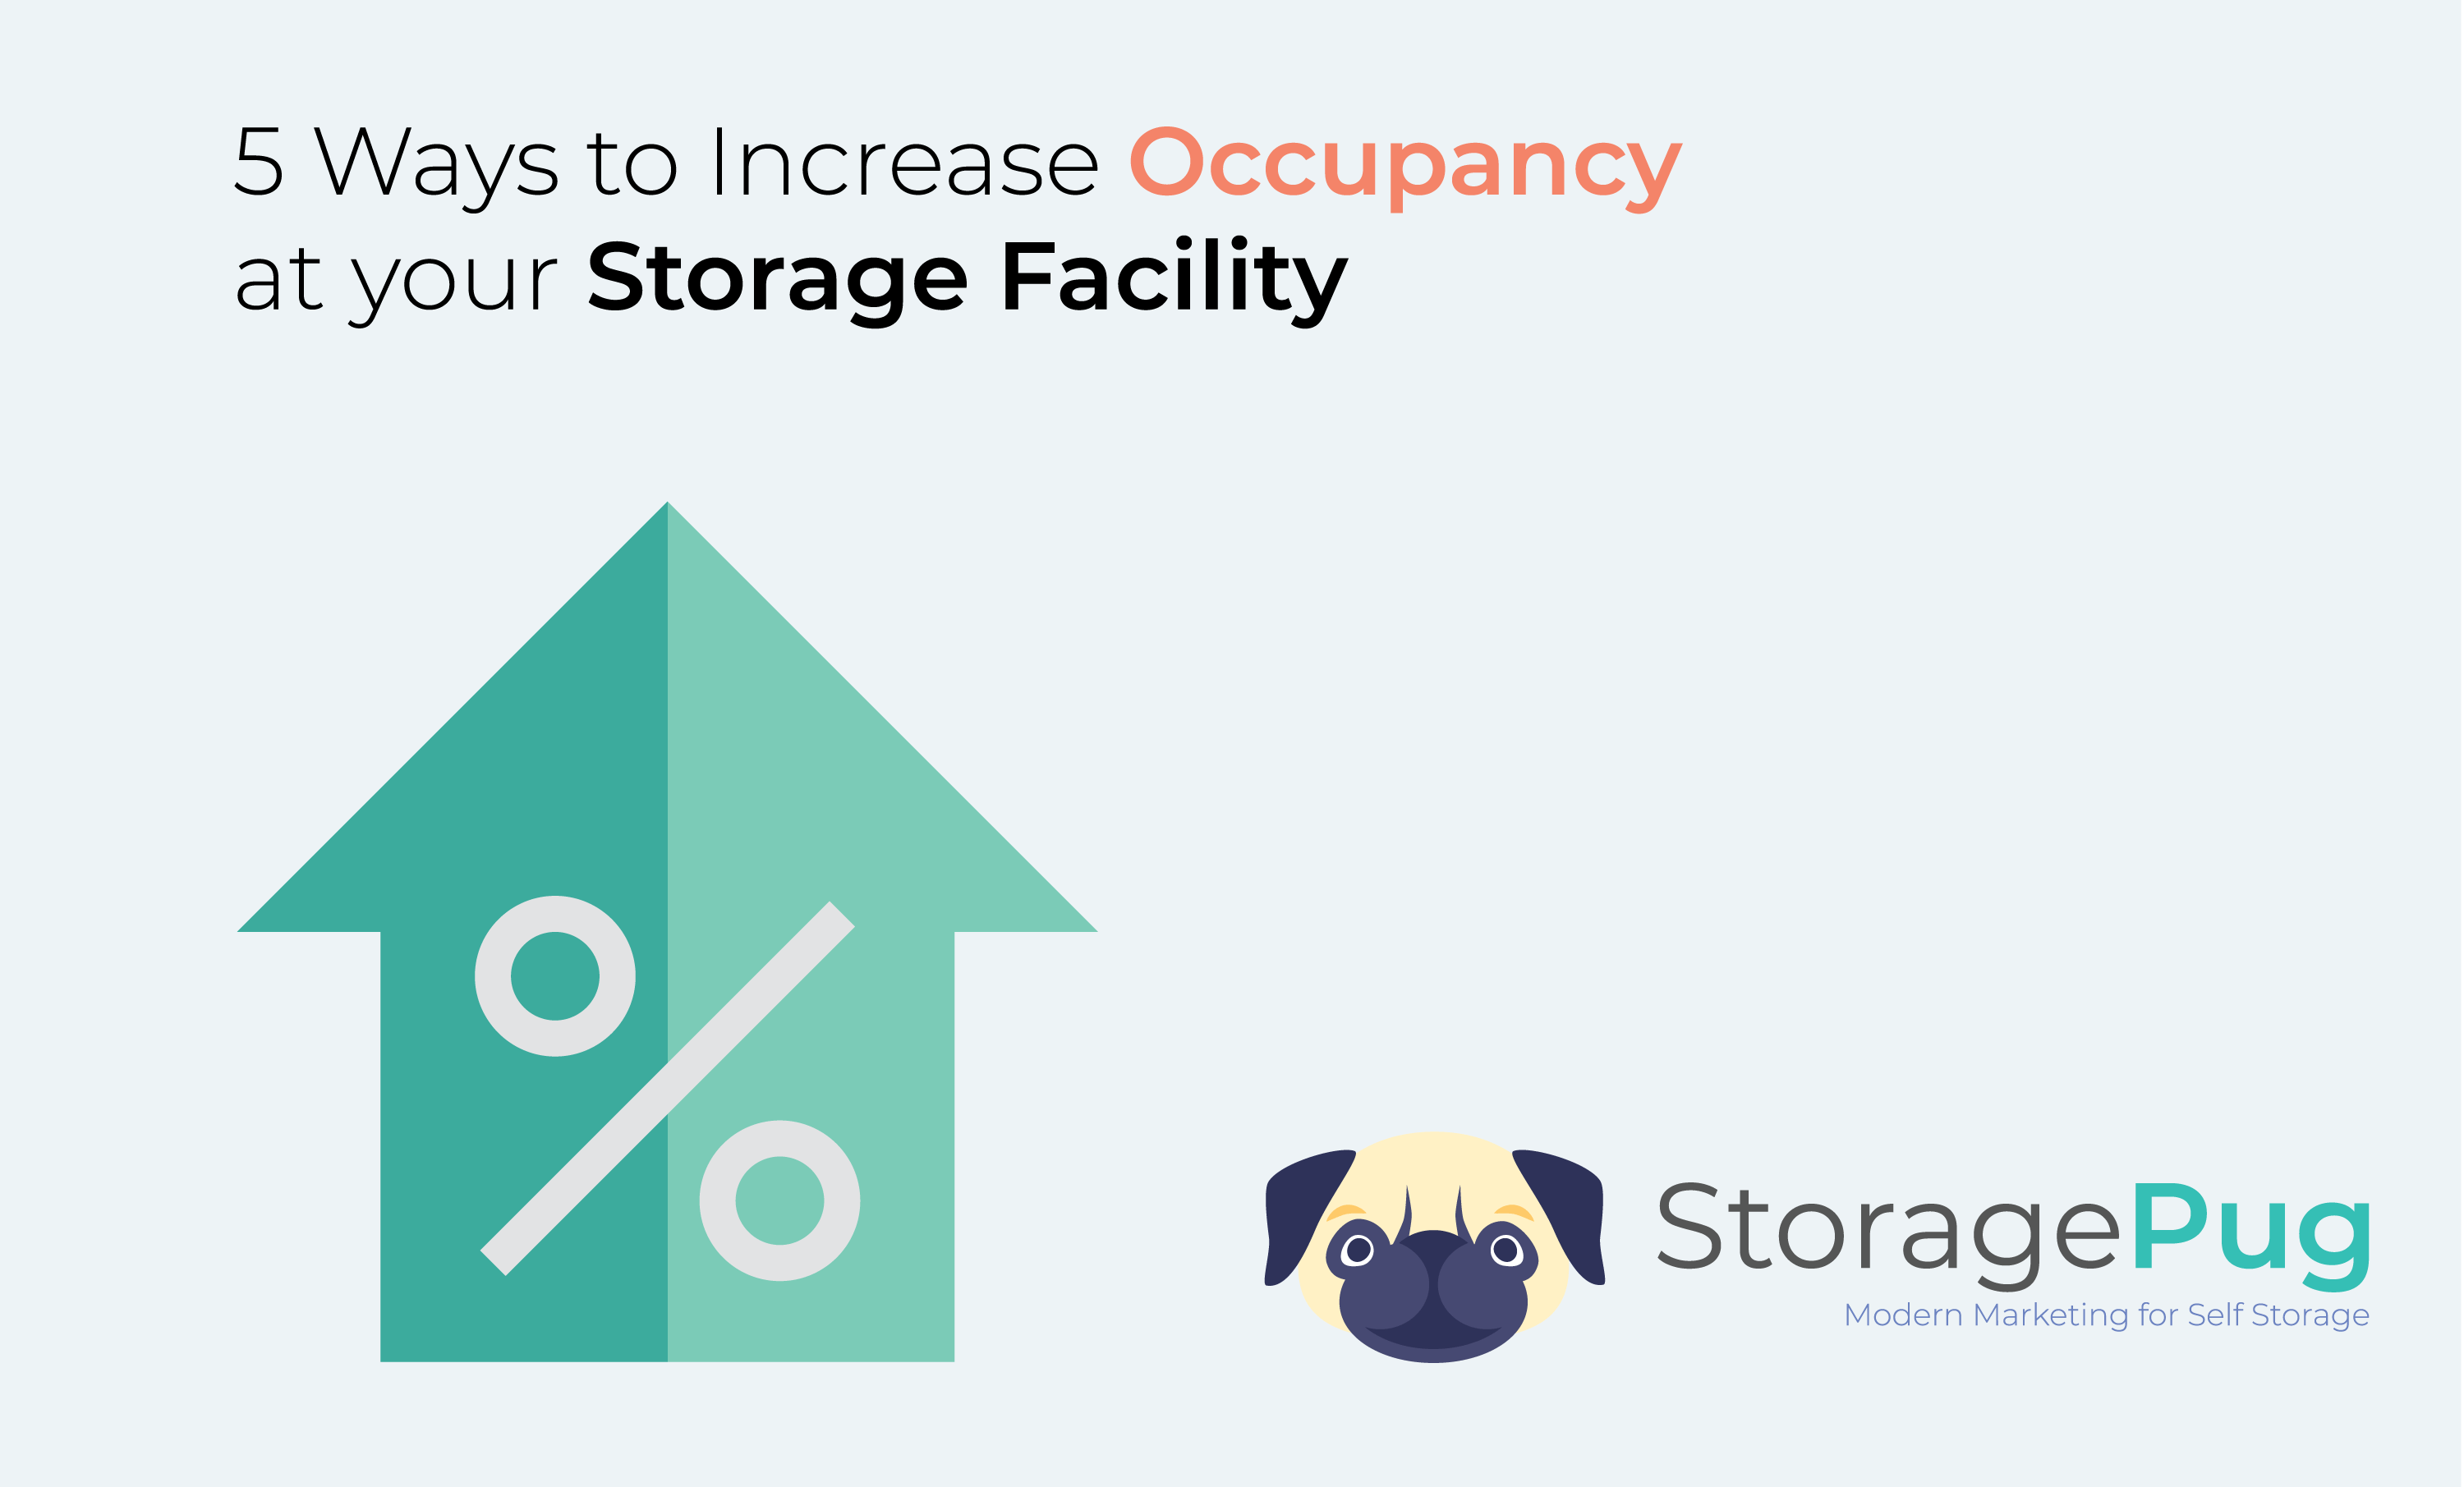 Self storage businesses can be very successful if they are marketed correctly, but they can also tank without the right marketing strategies.